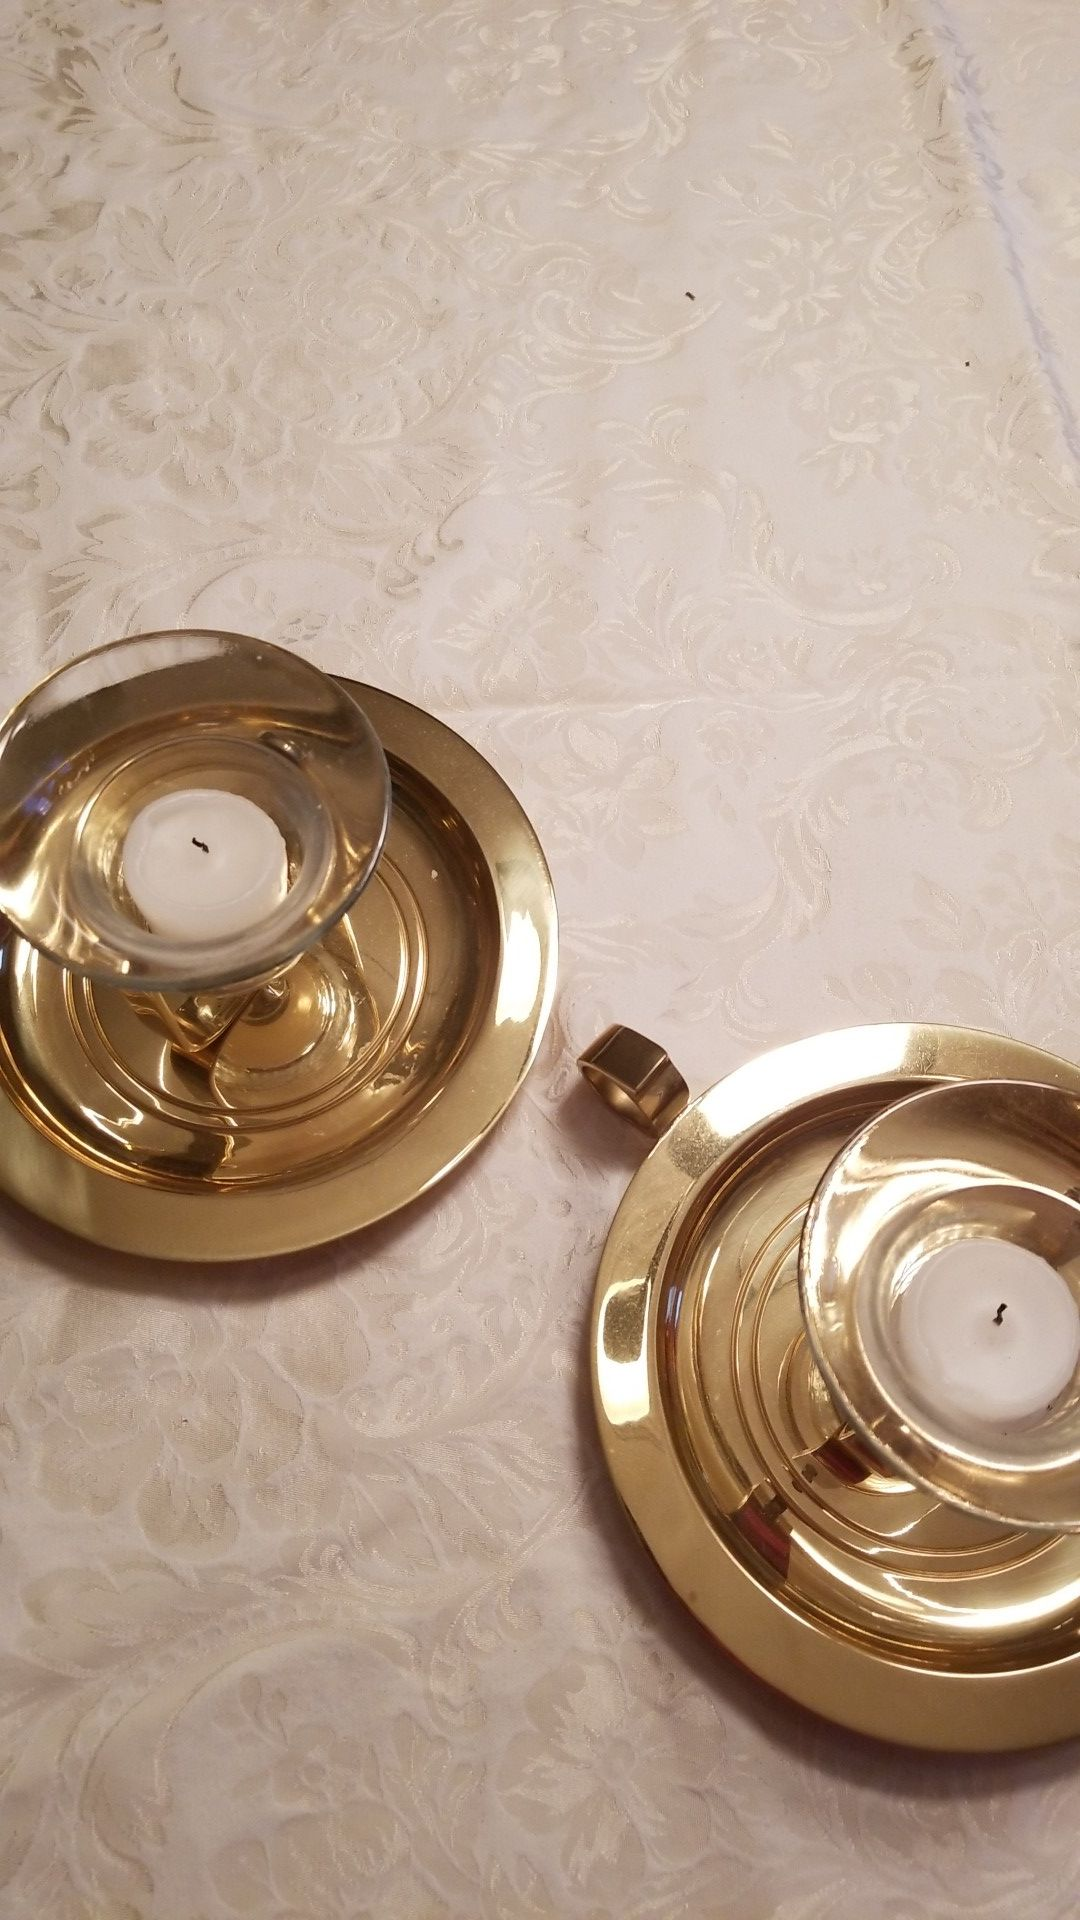 Brass candle holders, either free standing or can be hung on wall